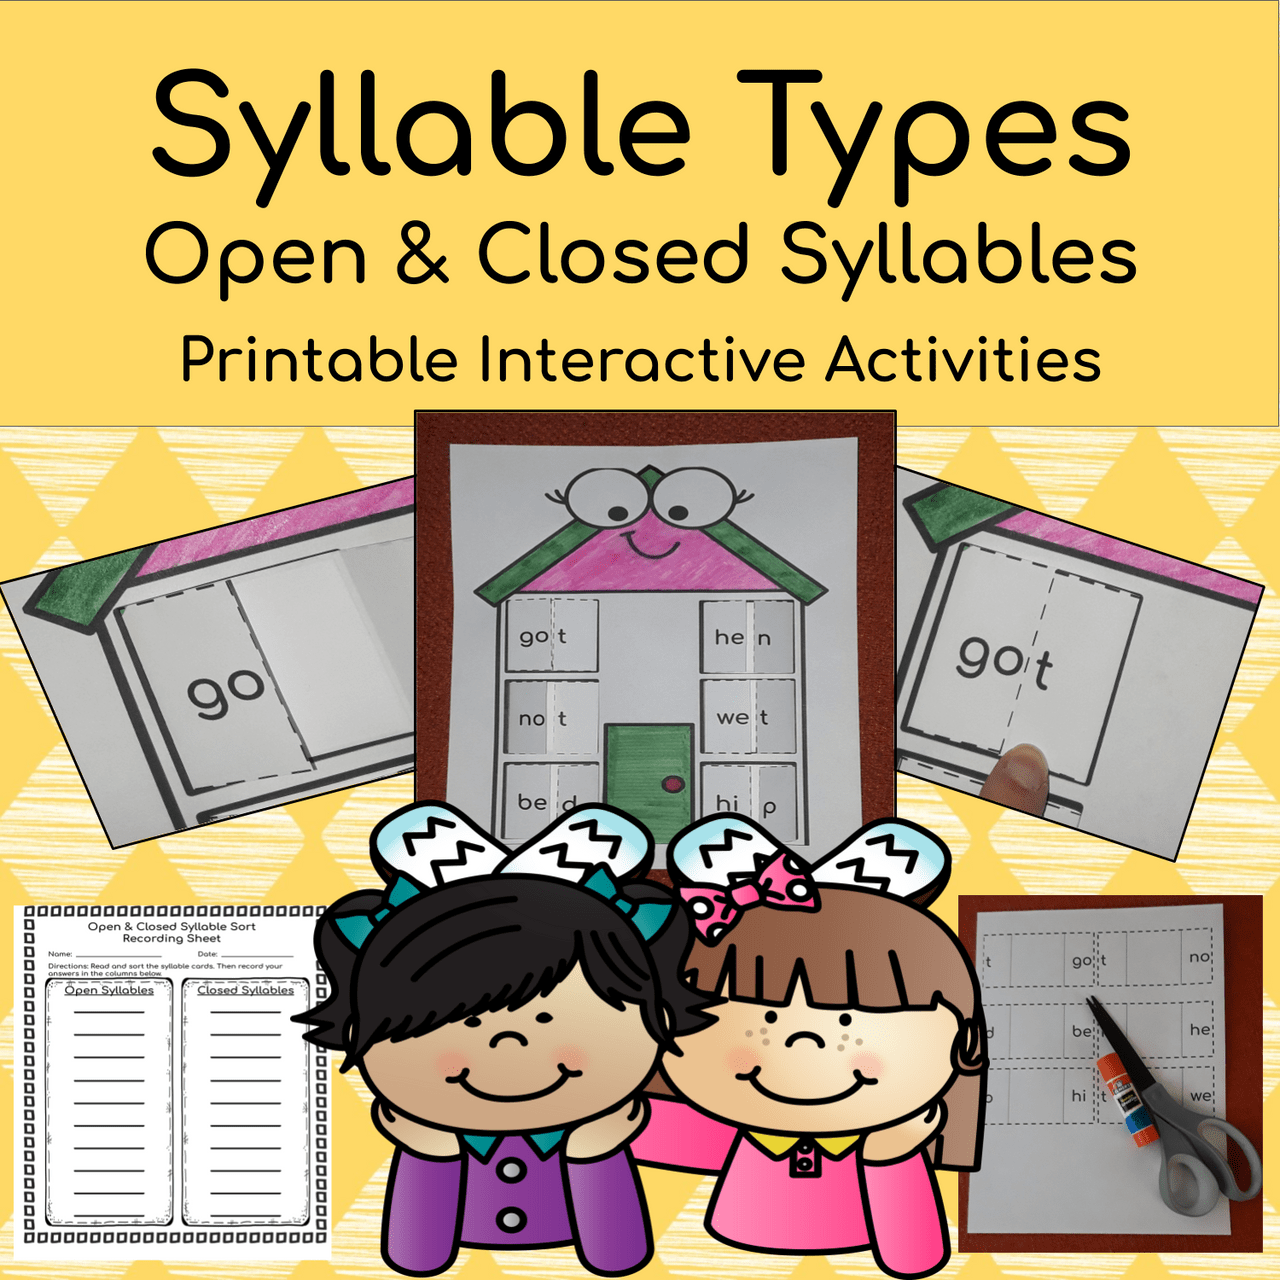 medium resolution of Syllable Types: Open \u0026 Closed Syllable Interactive Printable Activity Pack